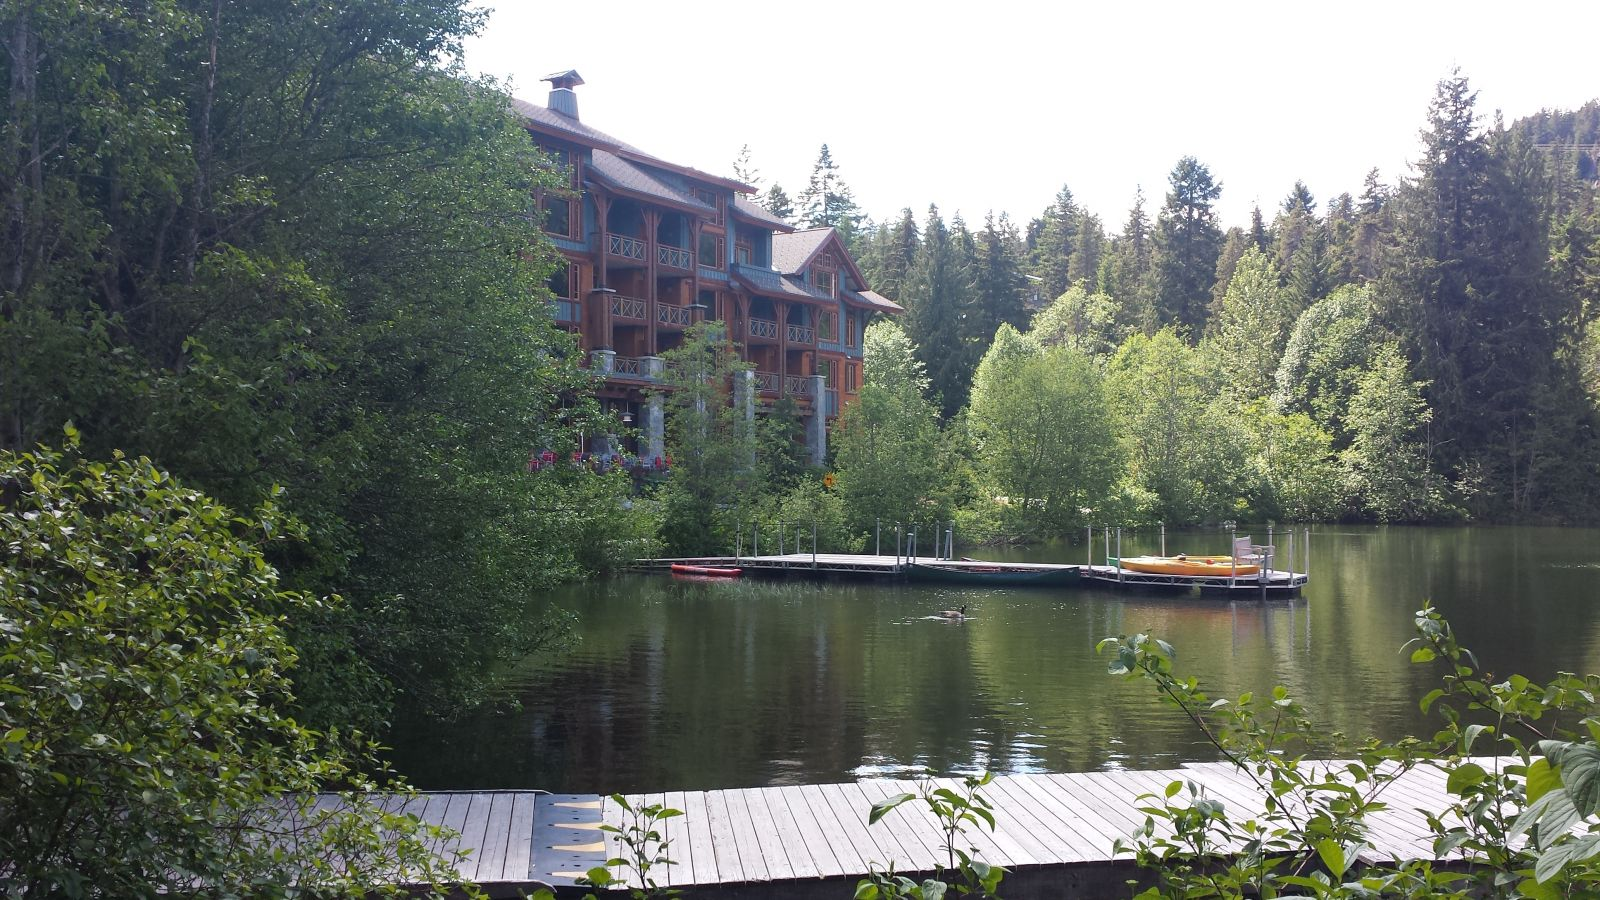 Nita Lake in Whistler